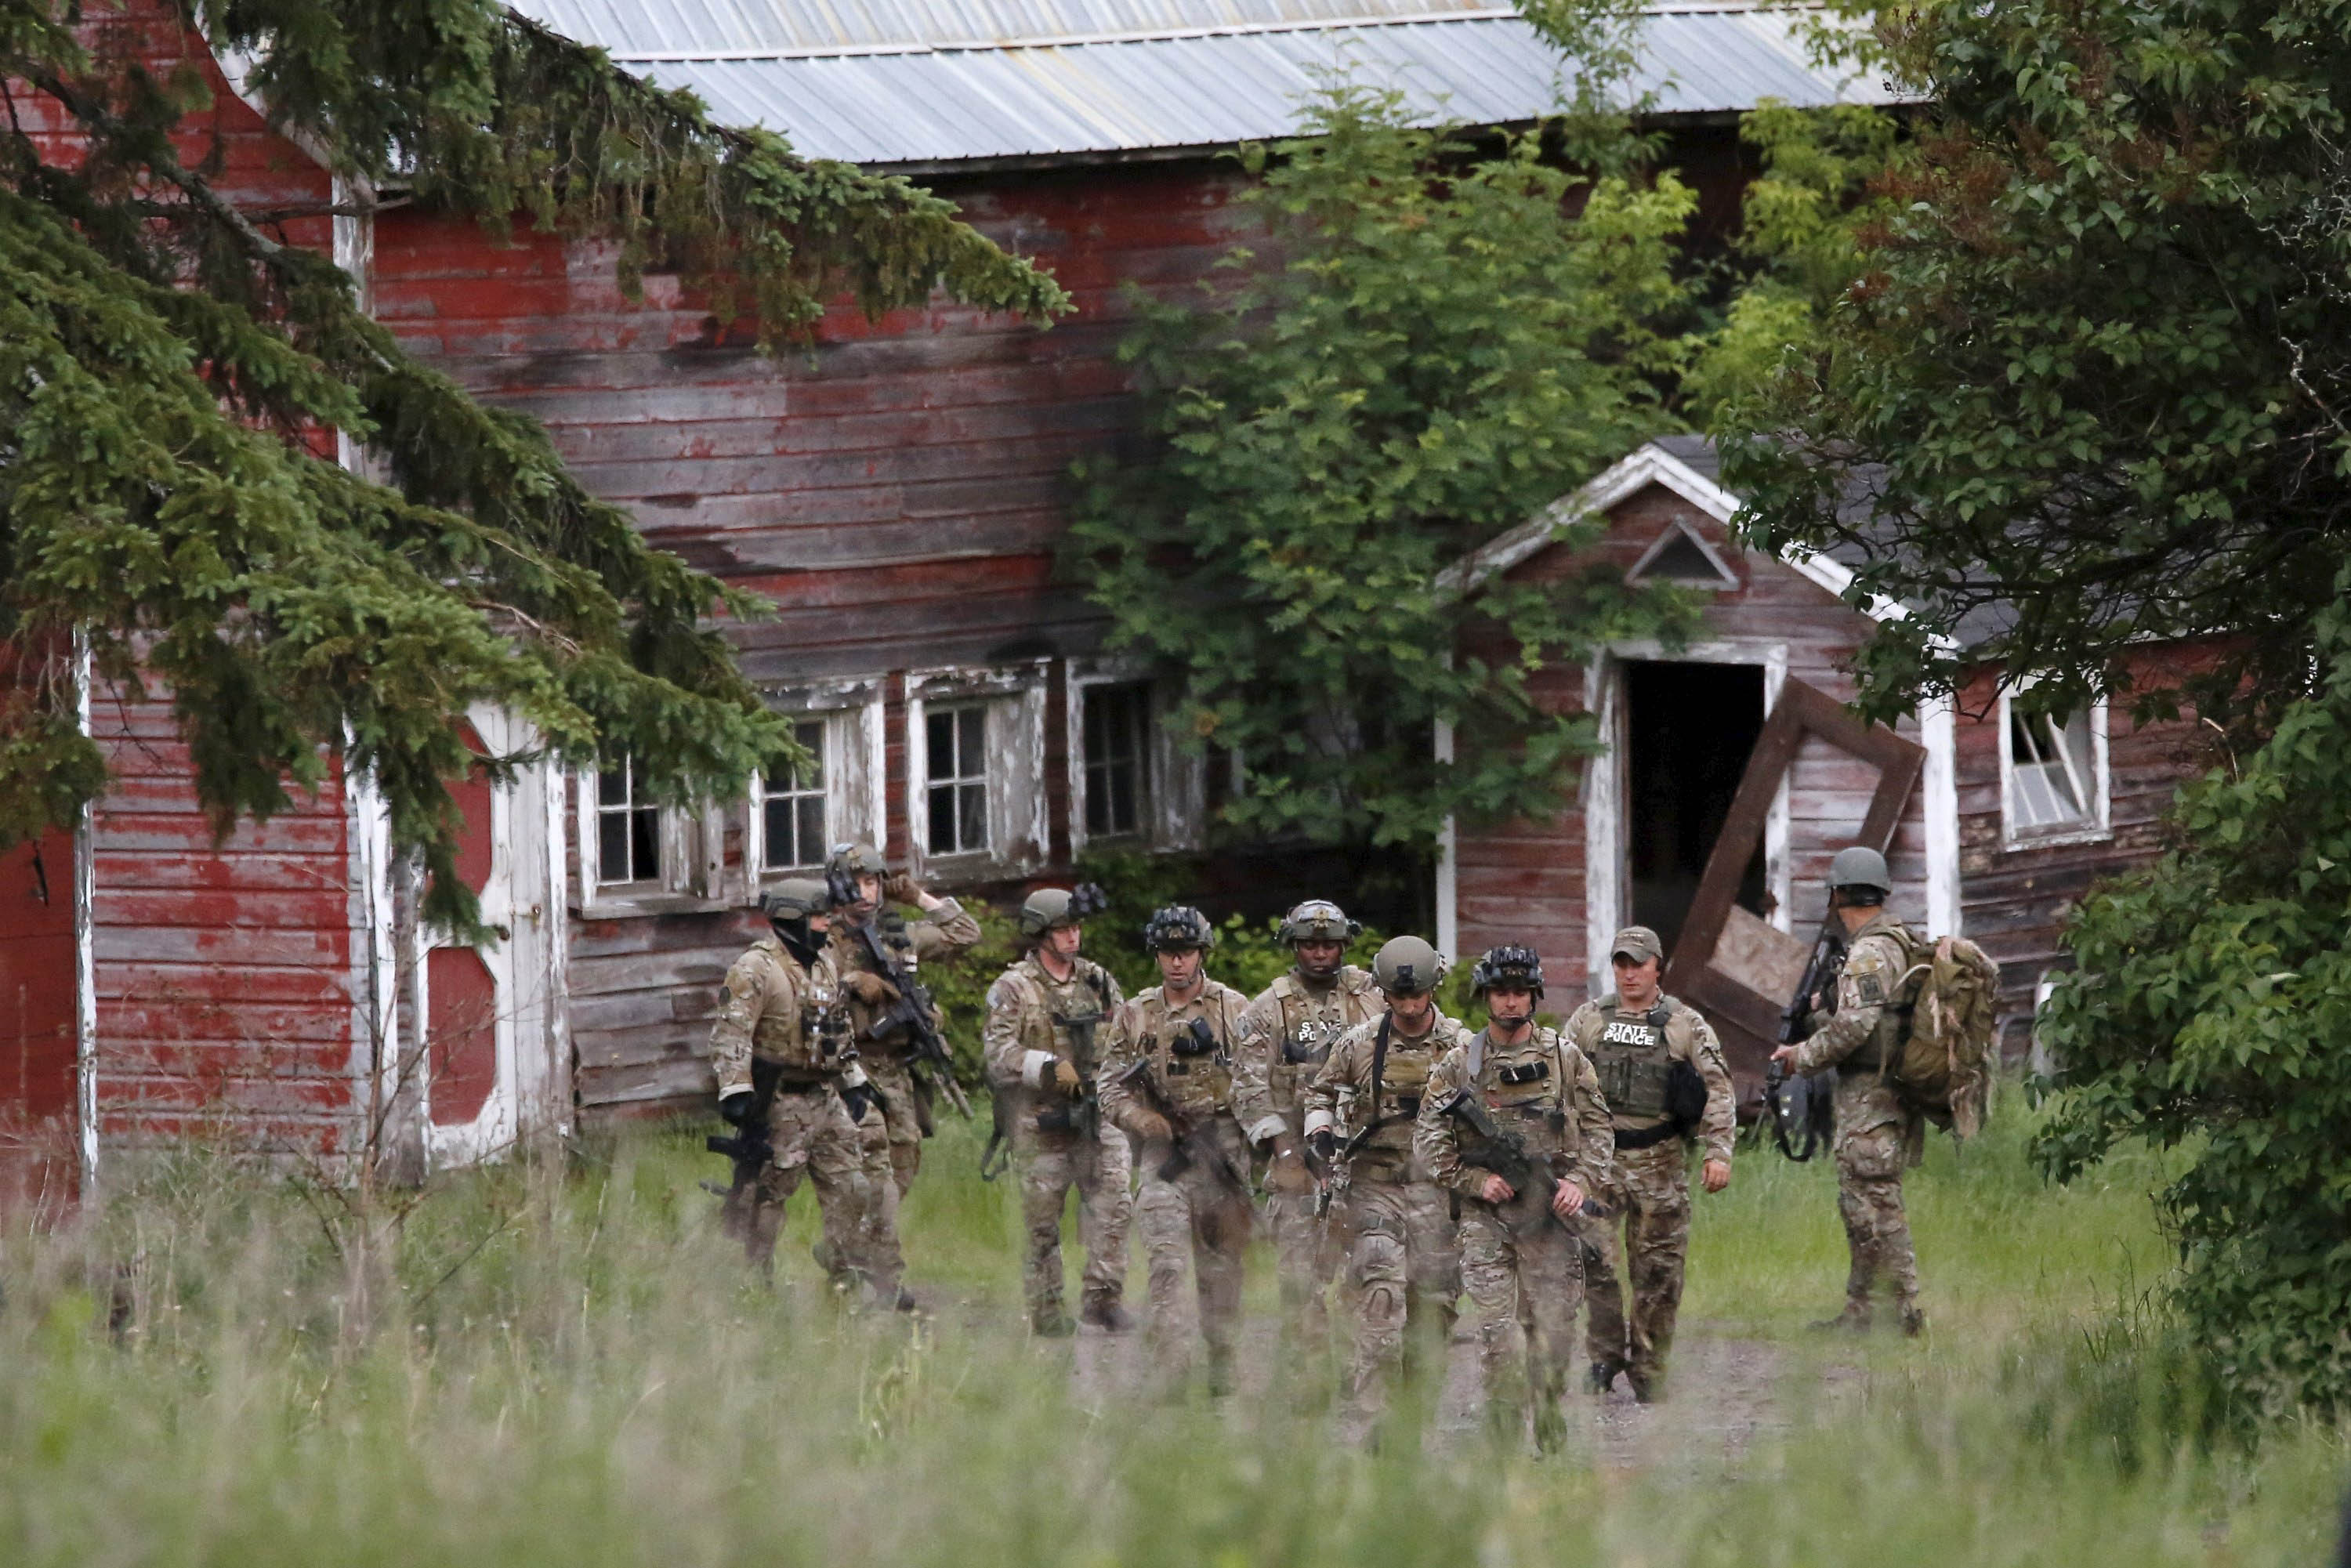 Police dressed in fatigues search near the Clinton Correctional Facility in Dannemora on June 8.